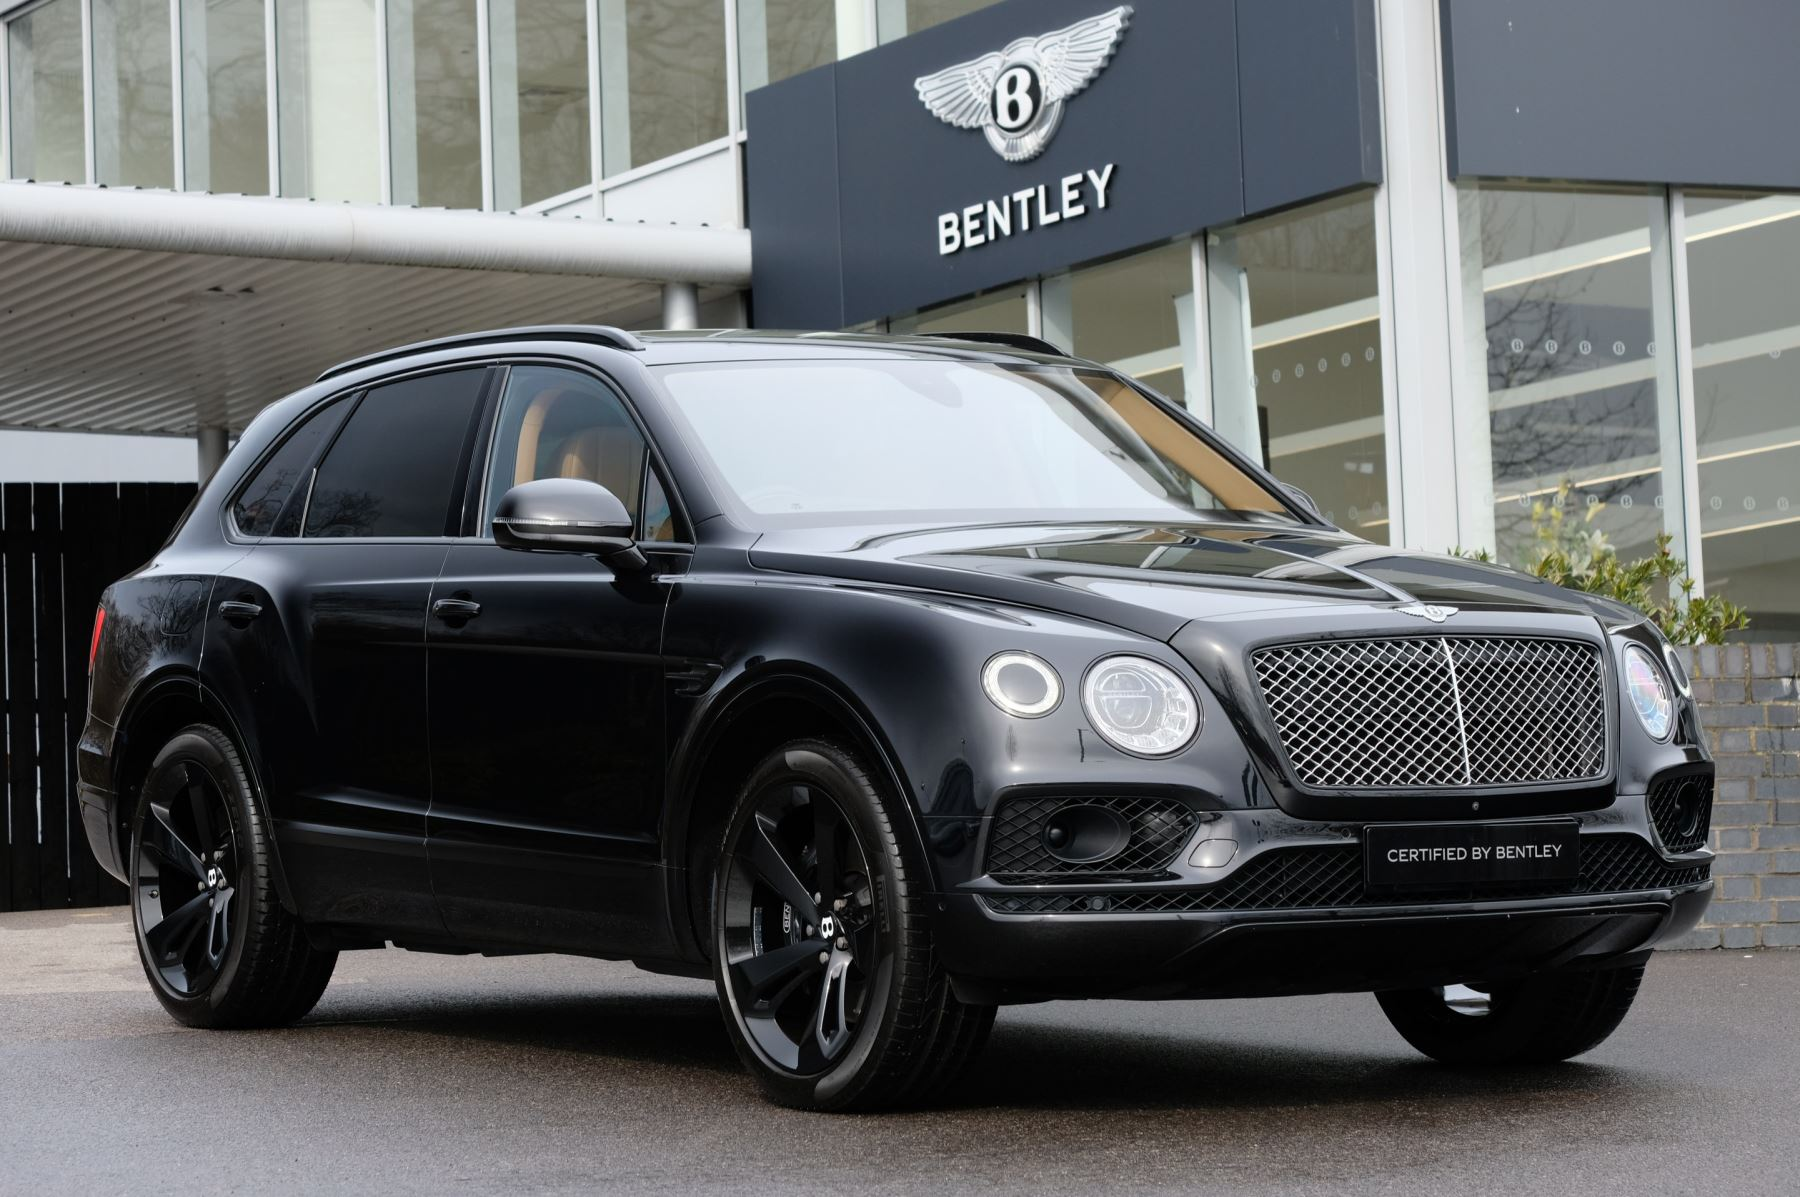 Bentley Bentayga 6.0 W12 5dr - Mulliner Driving Specification  Automatic Estate (2016)